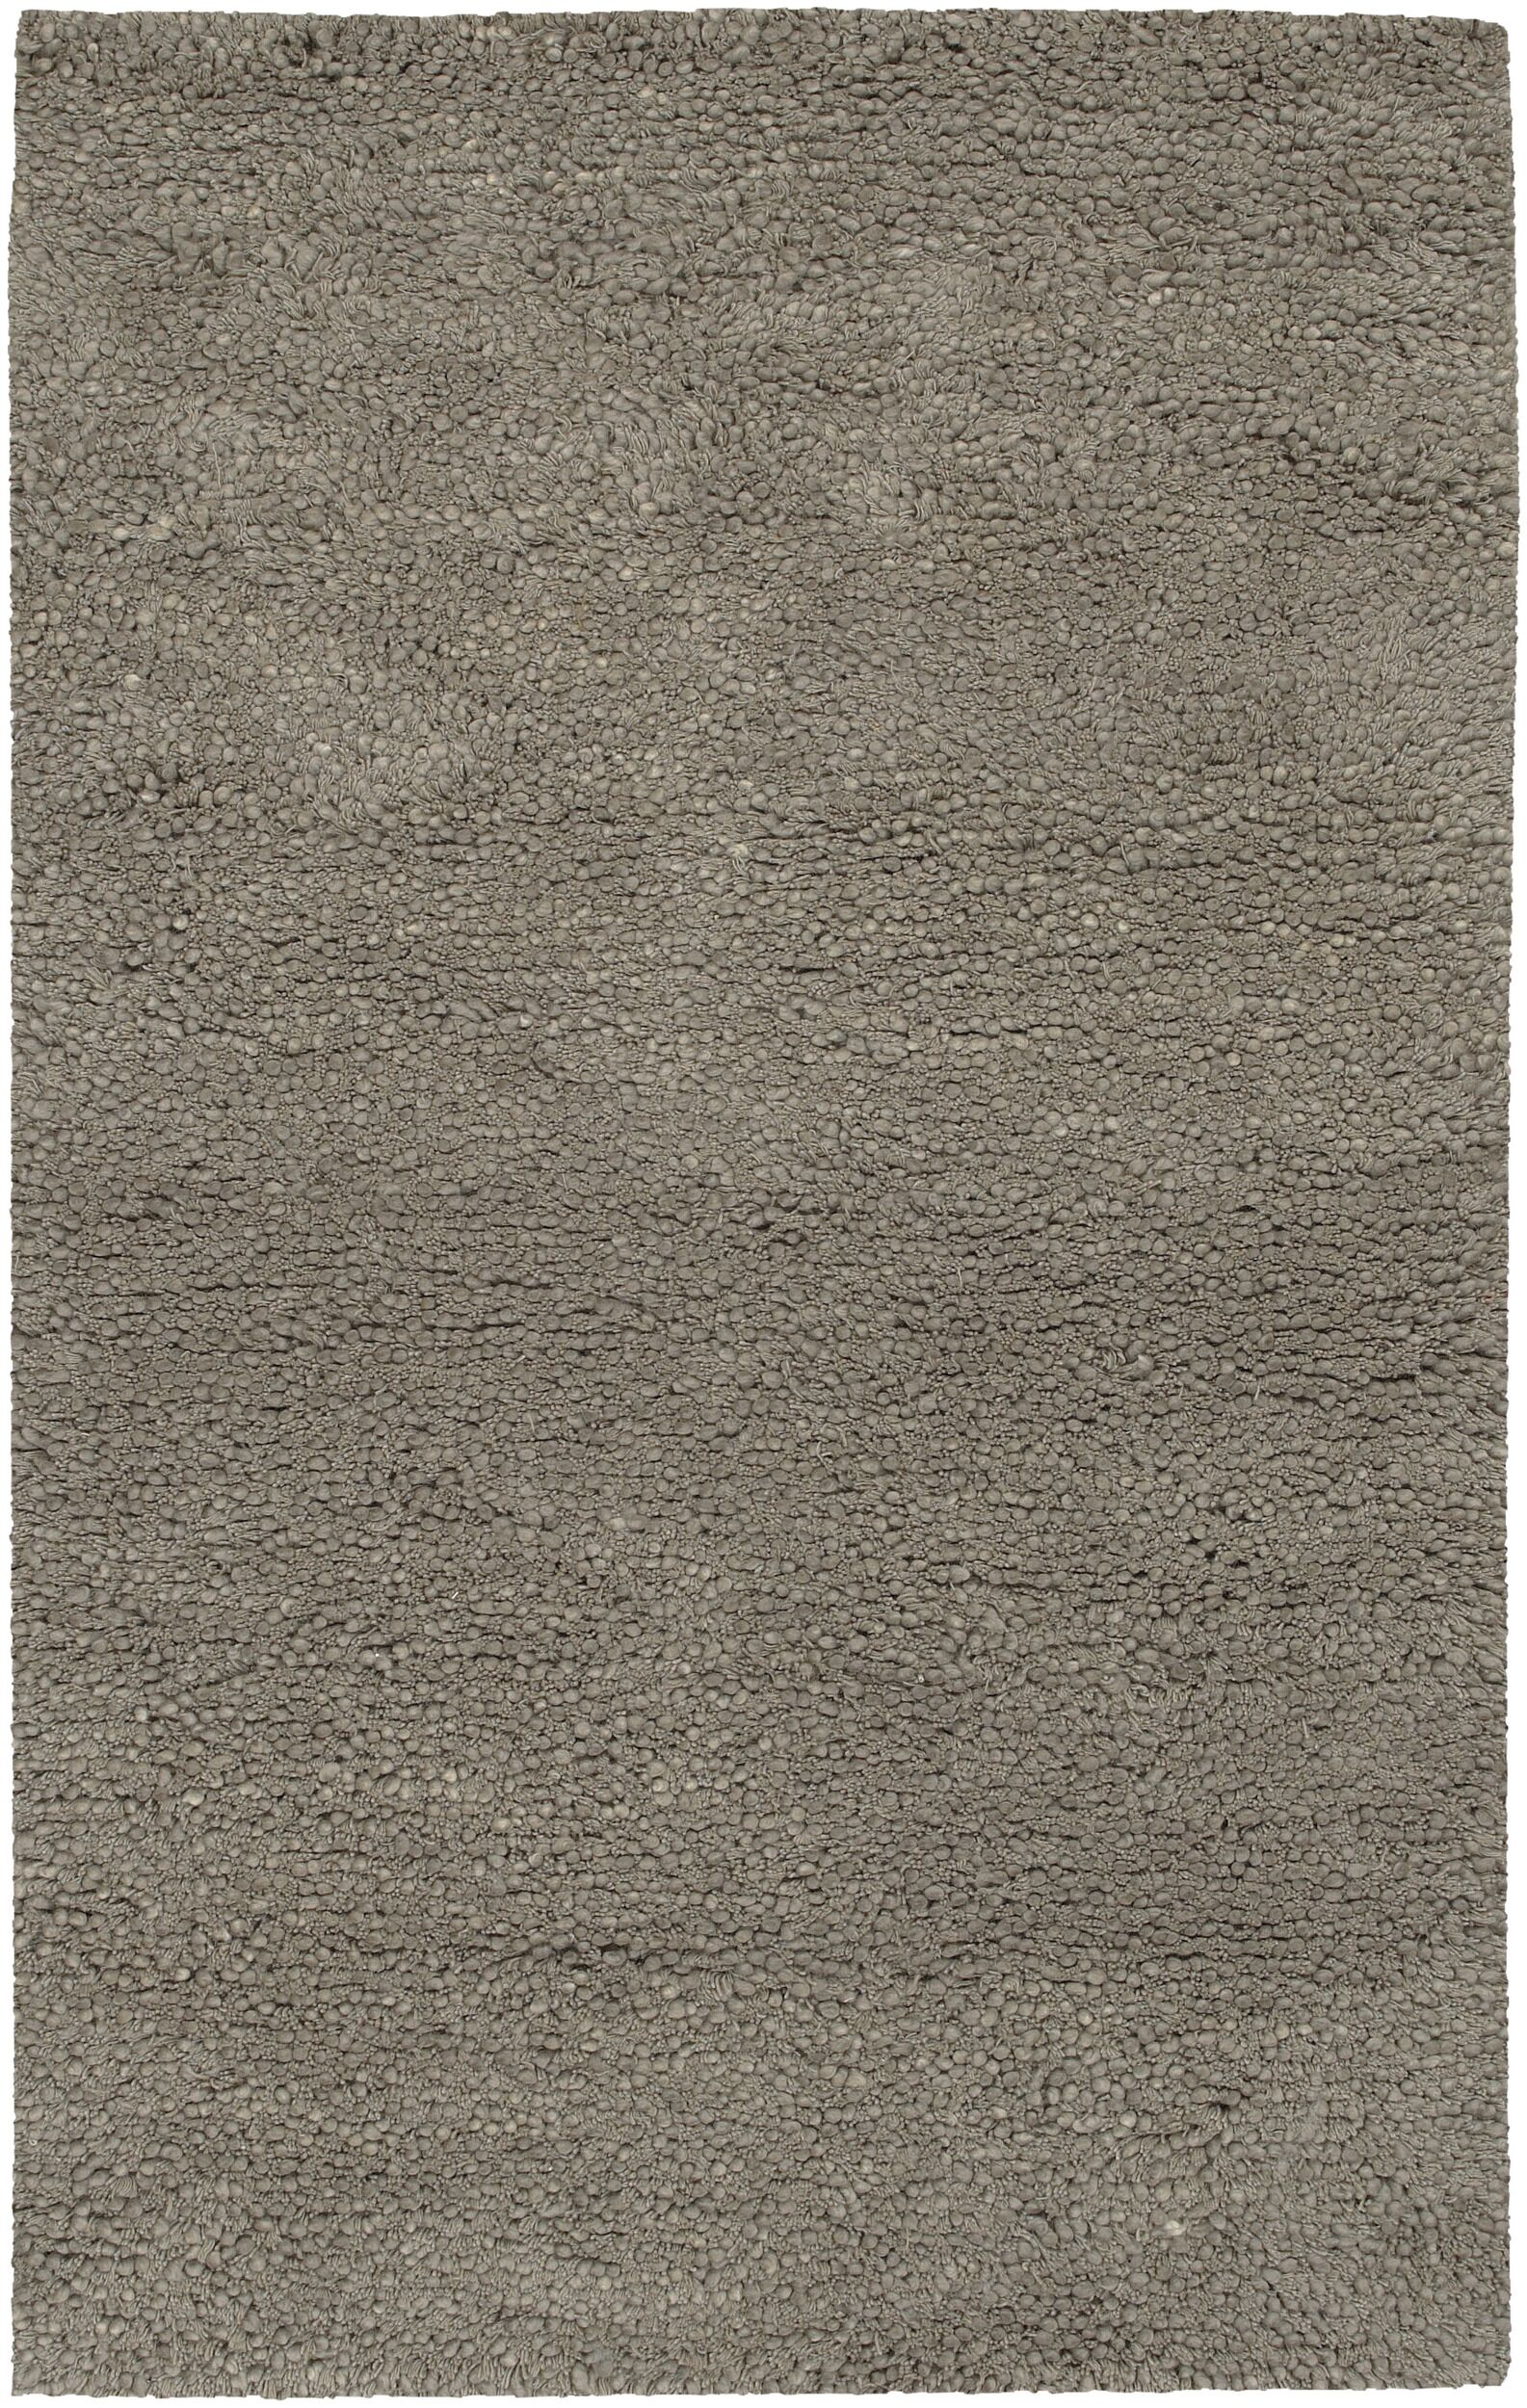 Janell Gray Rug Rug Size: Rectangle 8' x 10'6